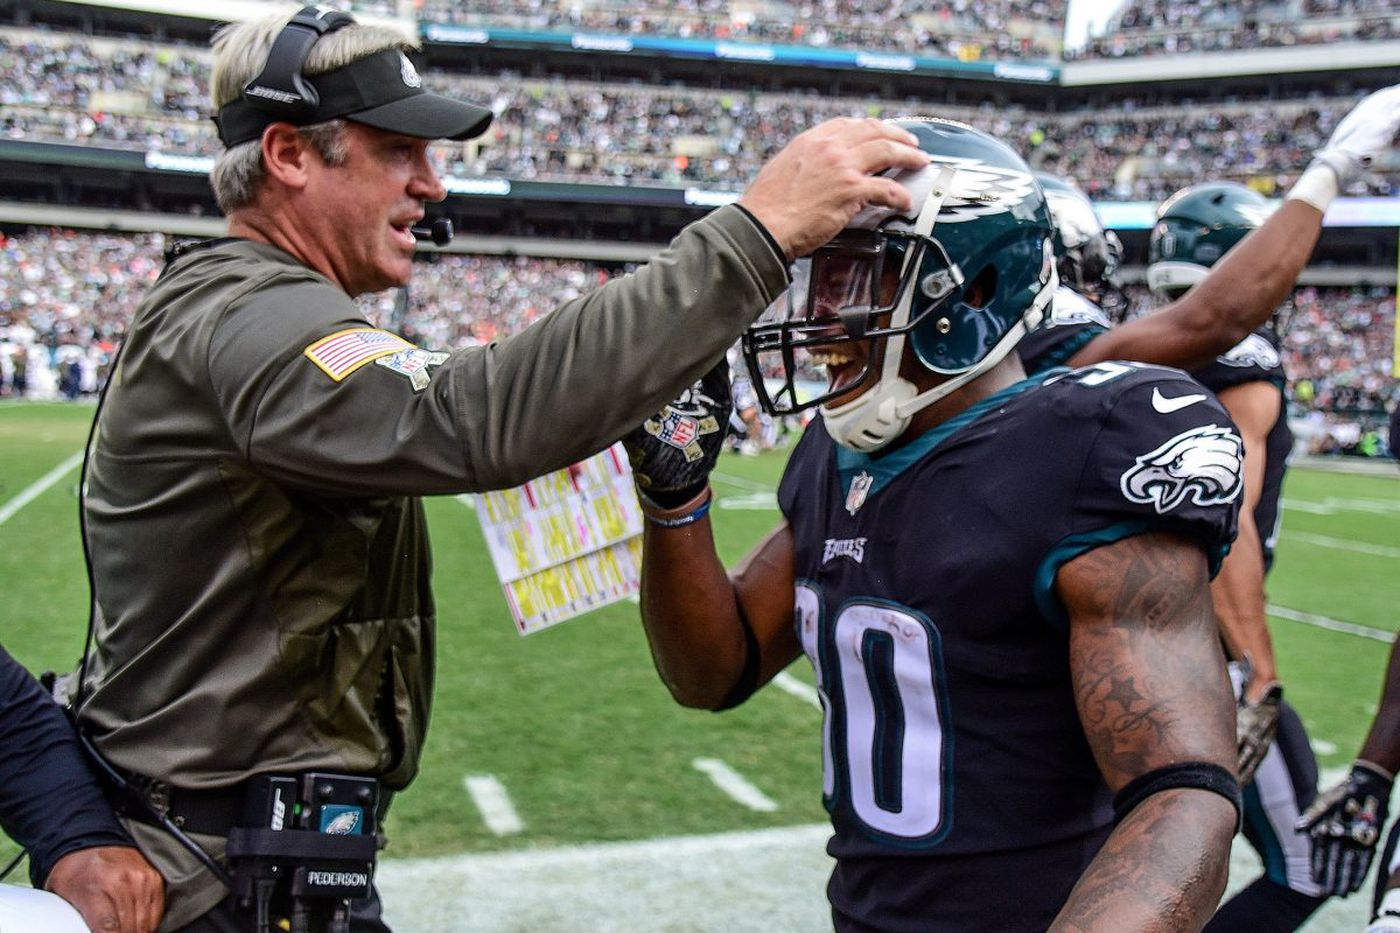 This is a good time for Eagles to catch their breath, and adjust to great expectations